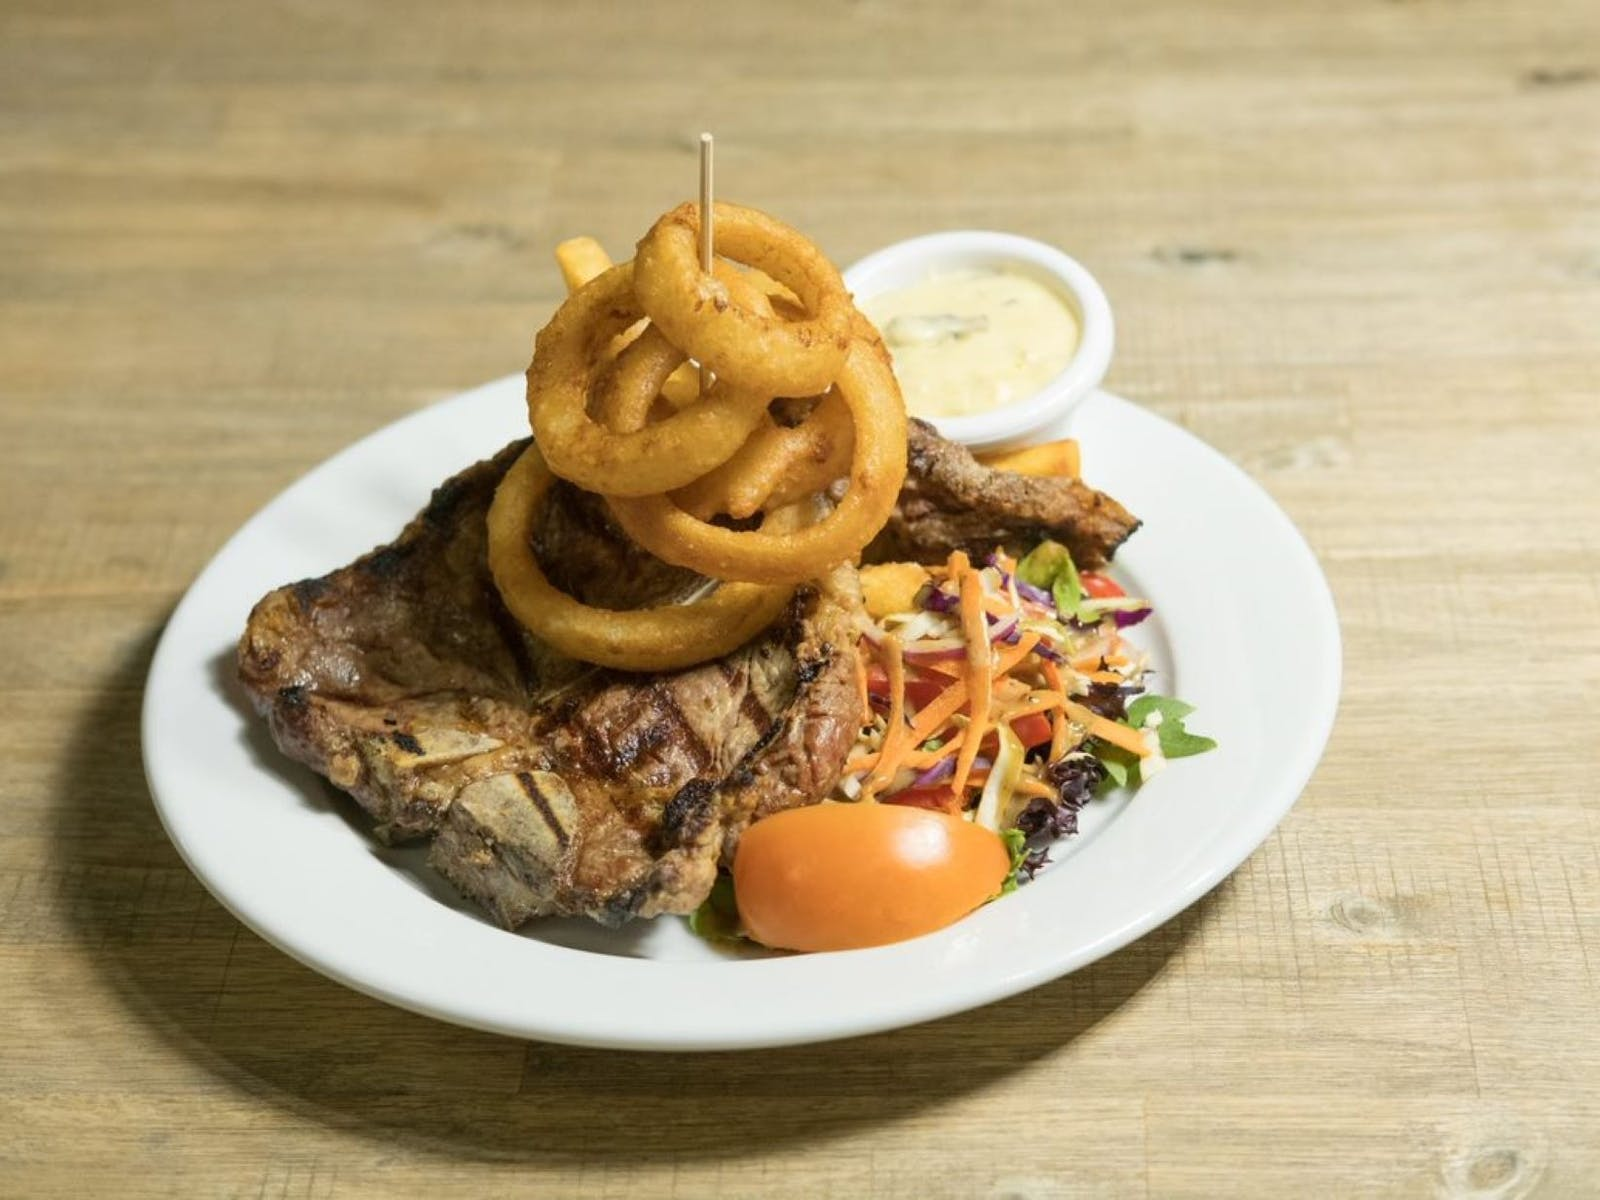 Enjoy a locally produced prime beef steak.  All beef supplied by Rangeland Quality Meats.